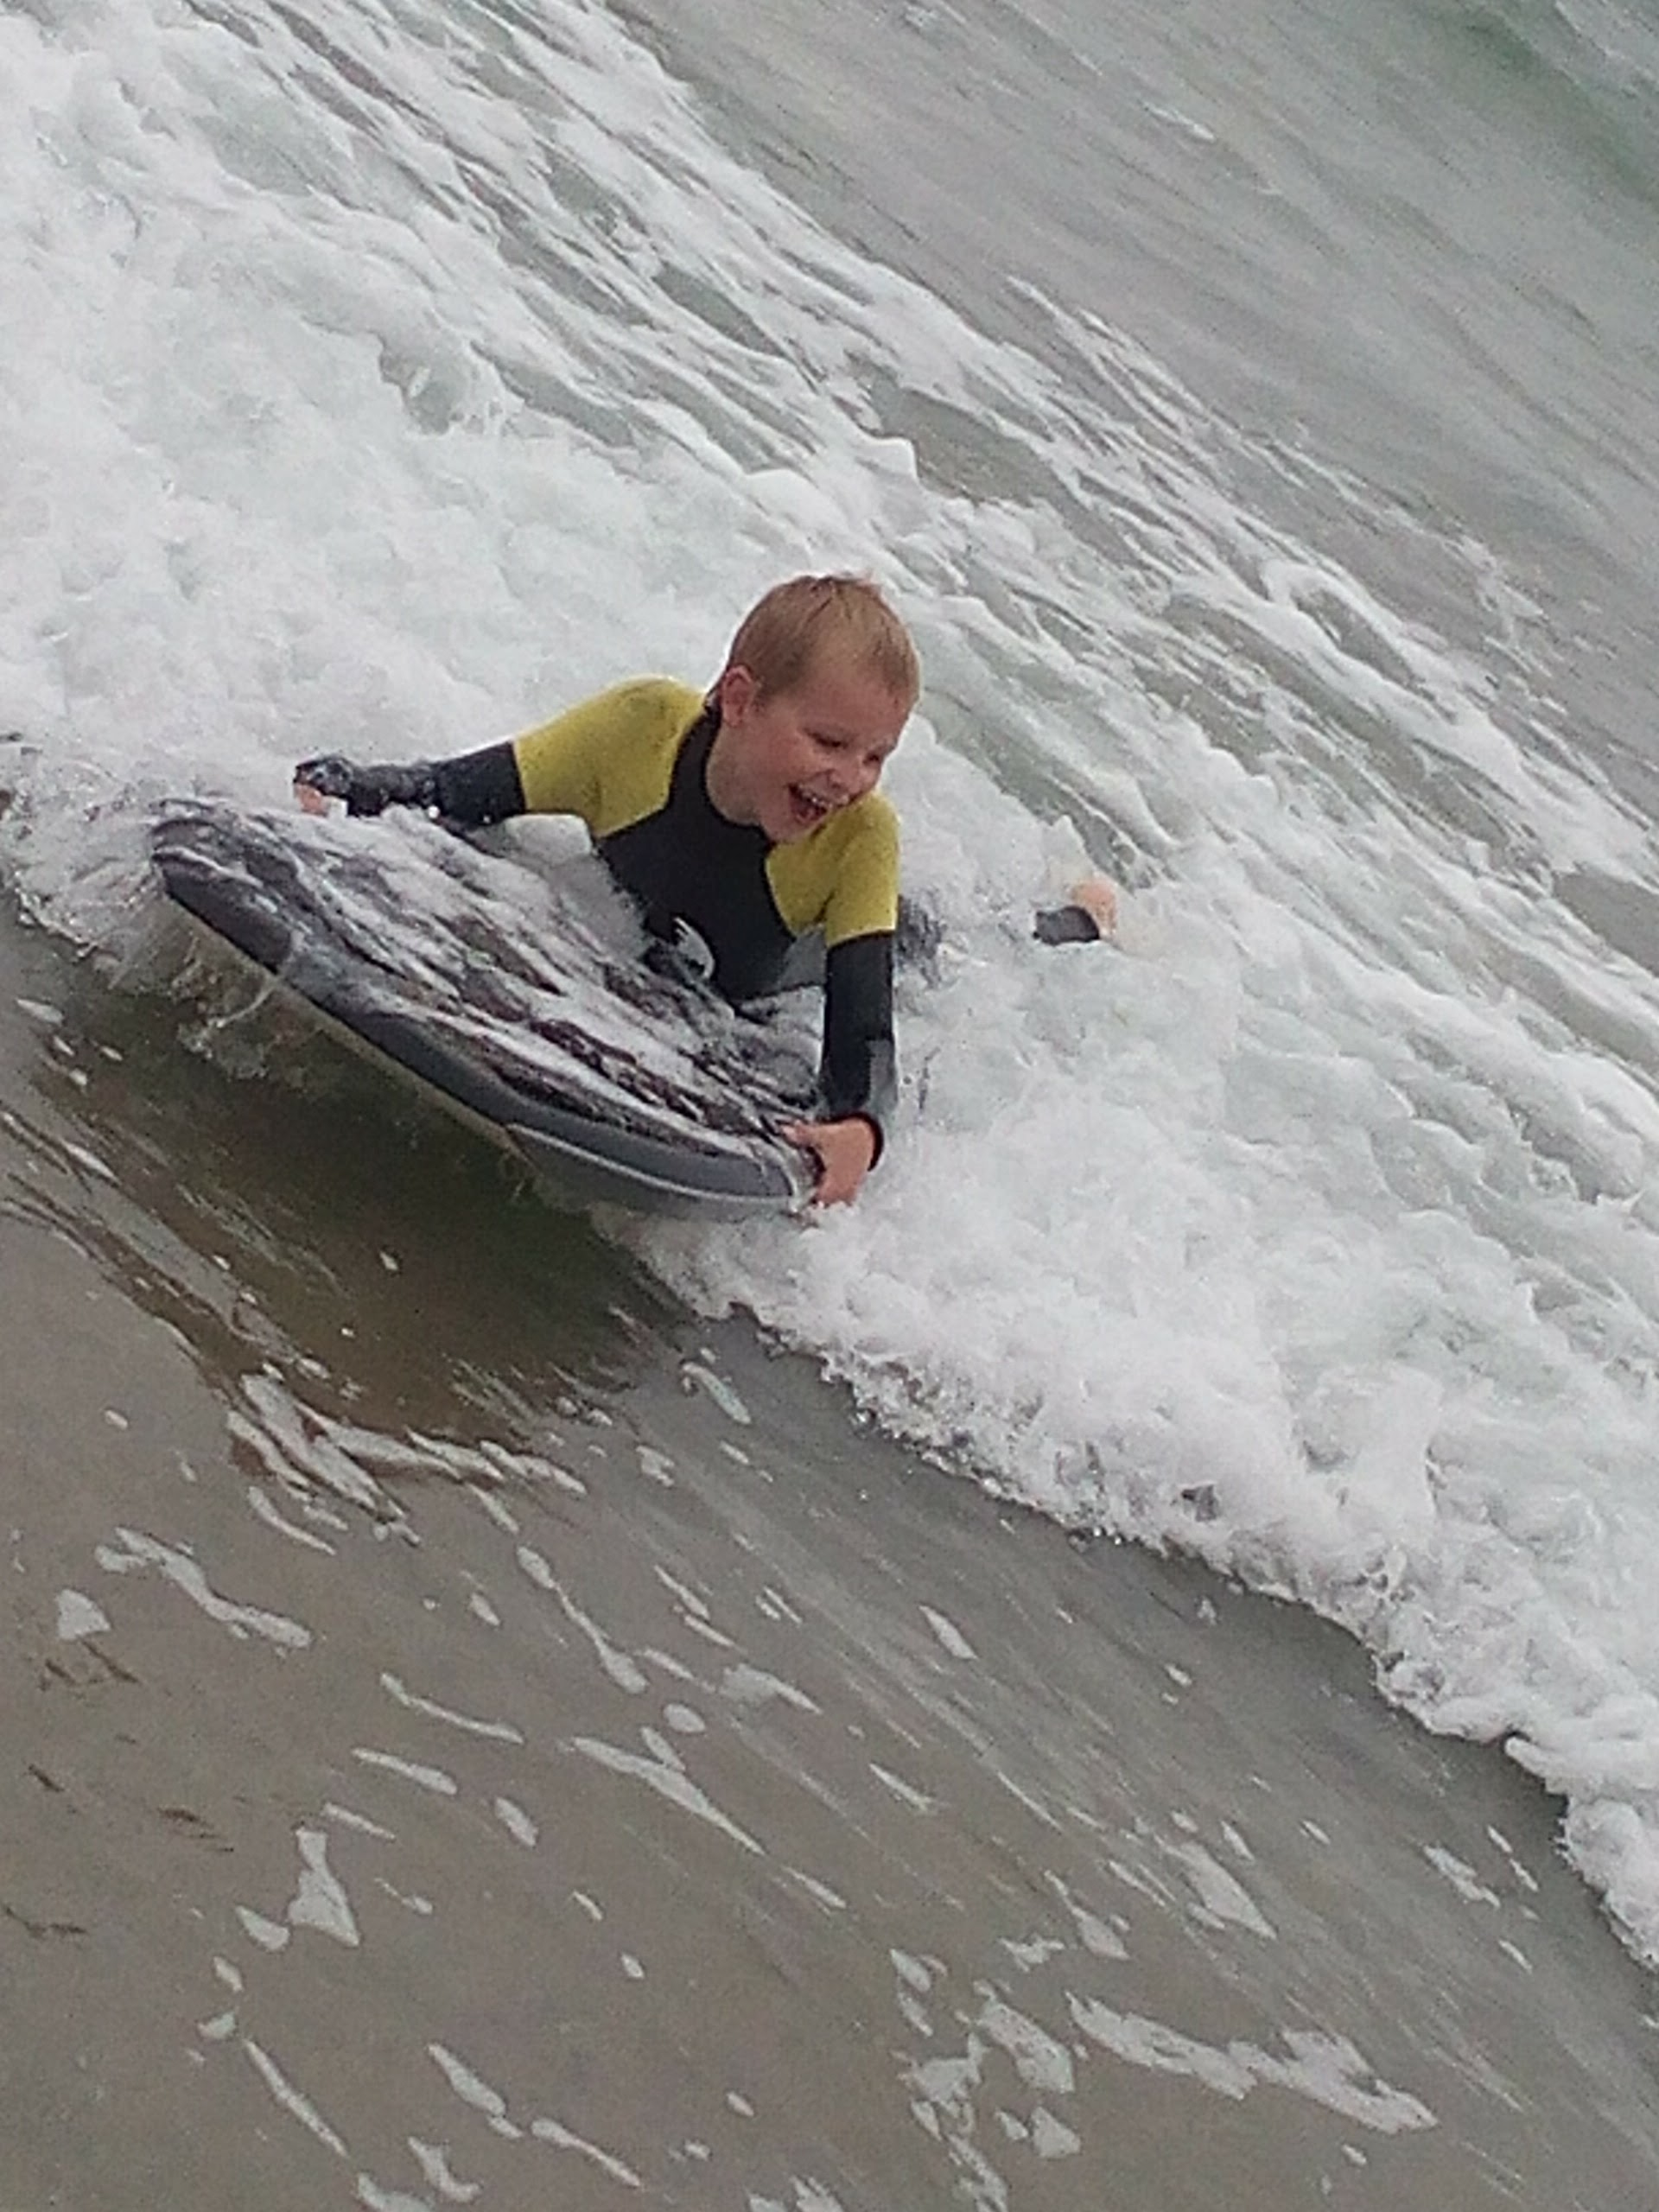 body boarding fun in Cornwall in our kids winter wetsuit. Full 5mm super stretch neoprene with GBS seams